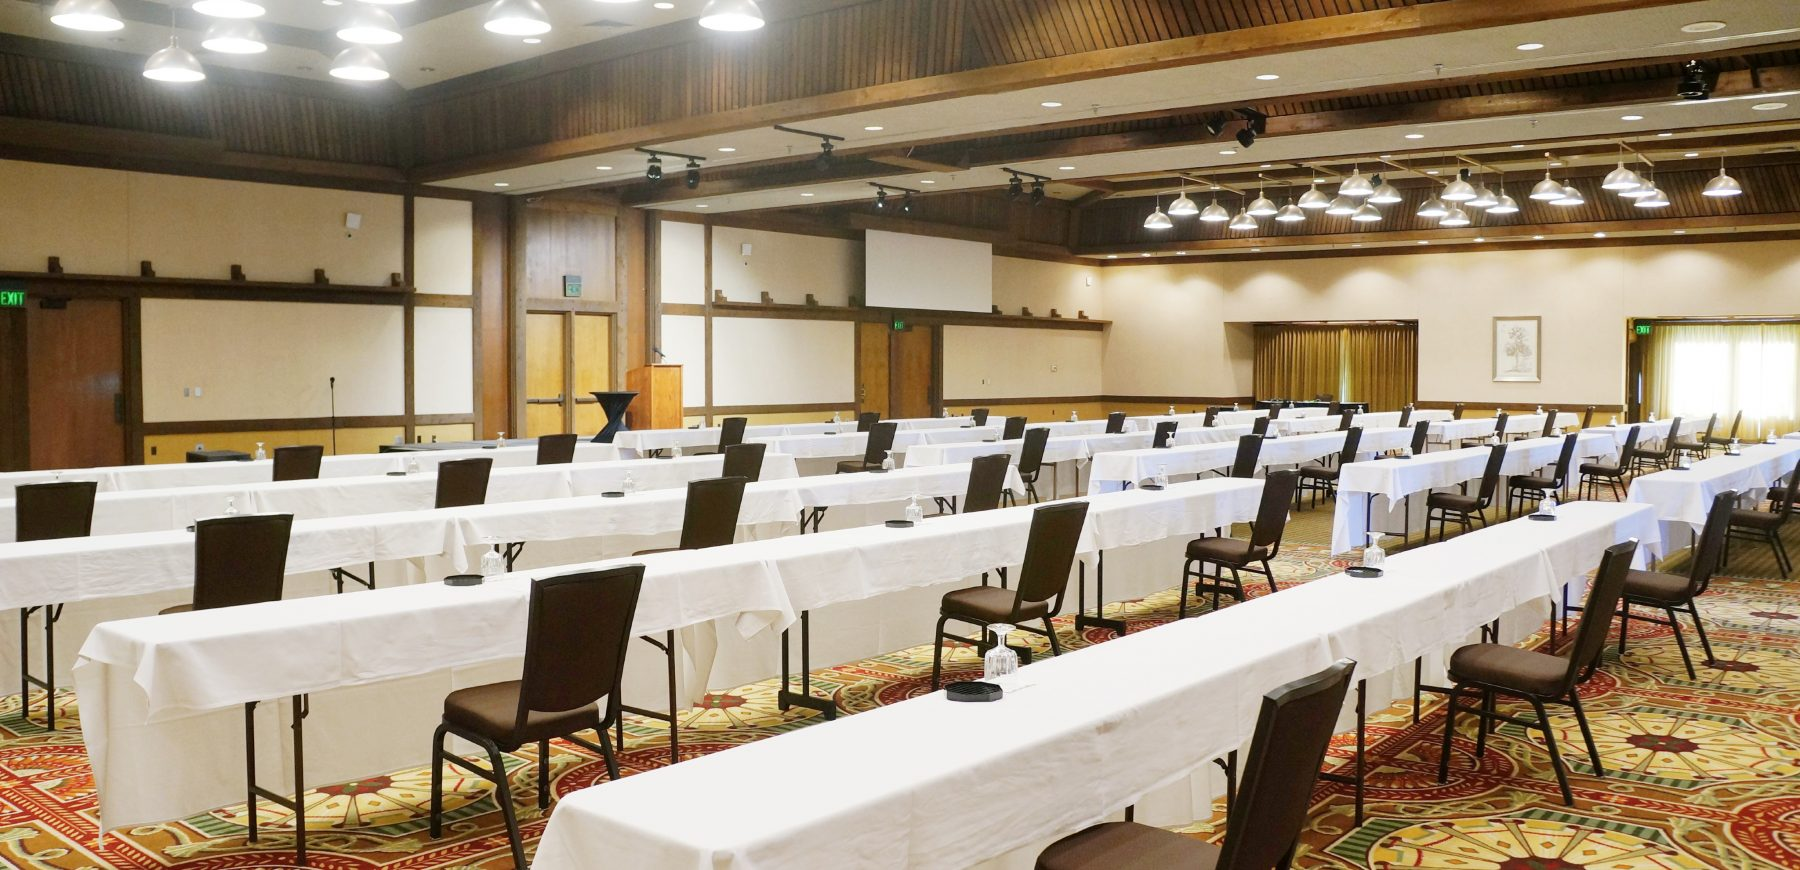 governors ballroom set up with long tables and chairs placed at a social distance